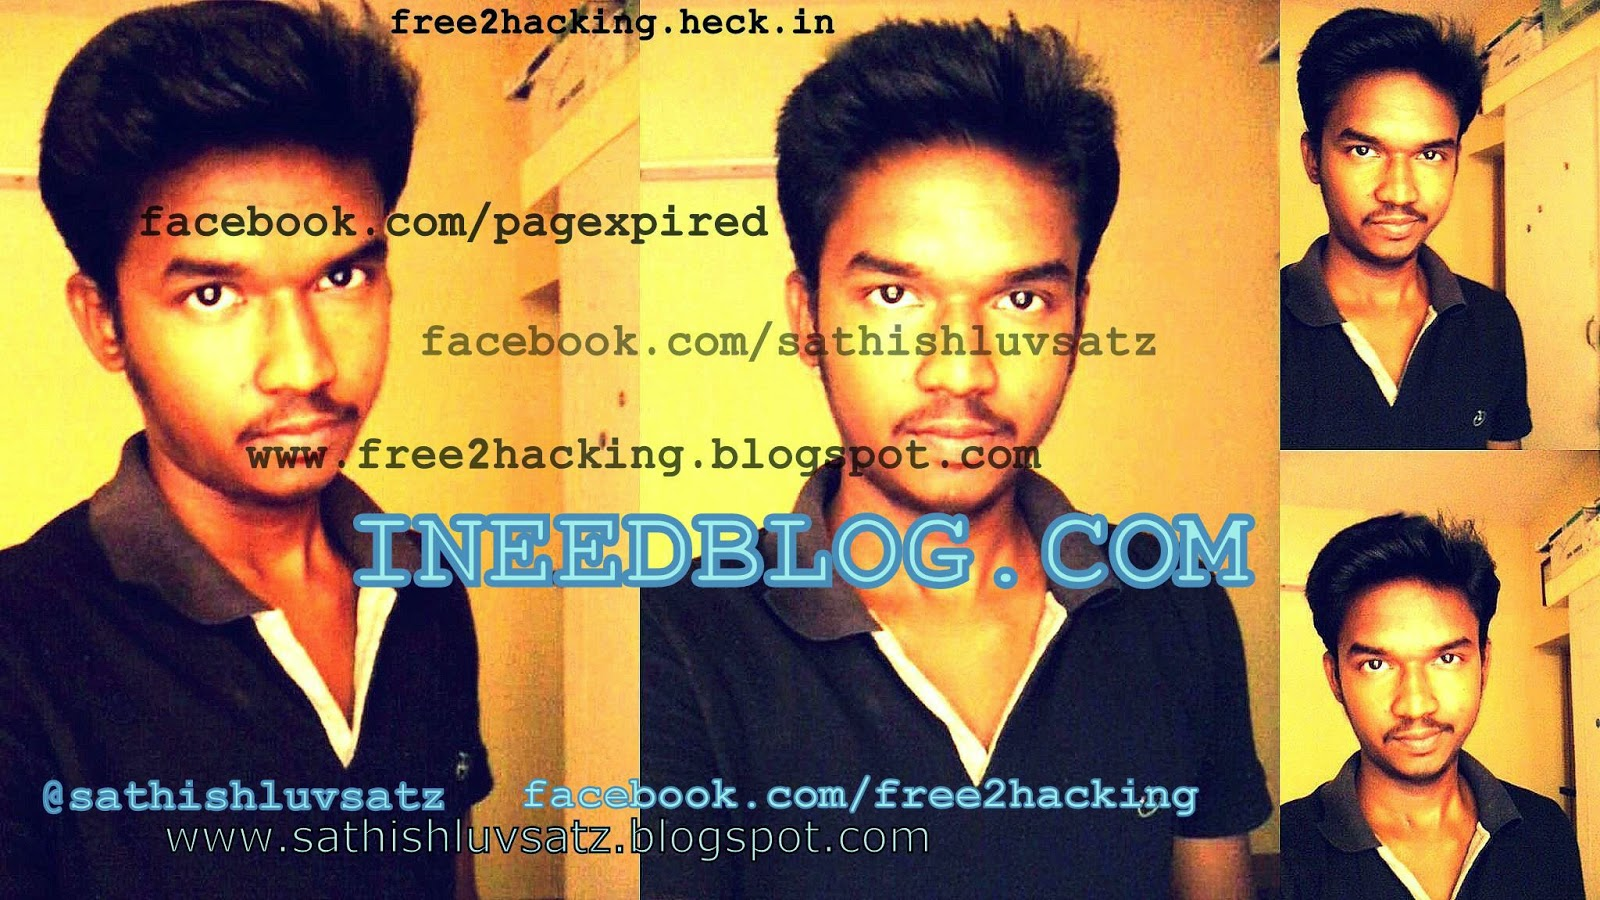 Ineedblog.com - @sathishluvsatz start-up.